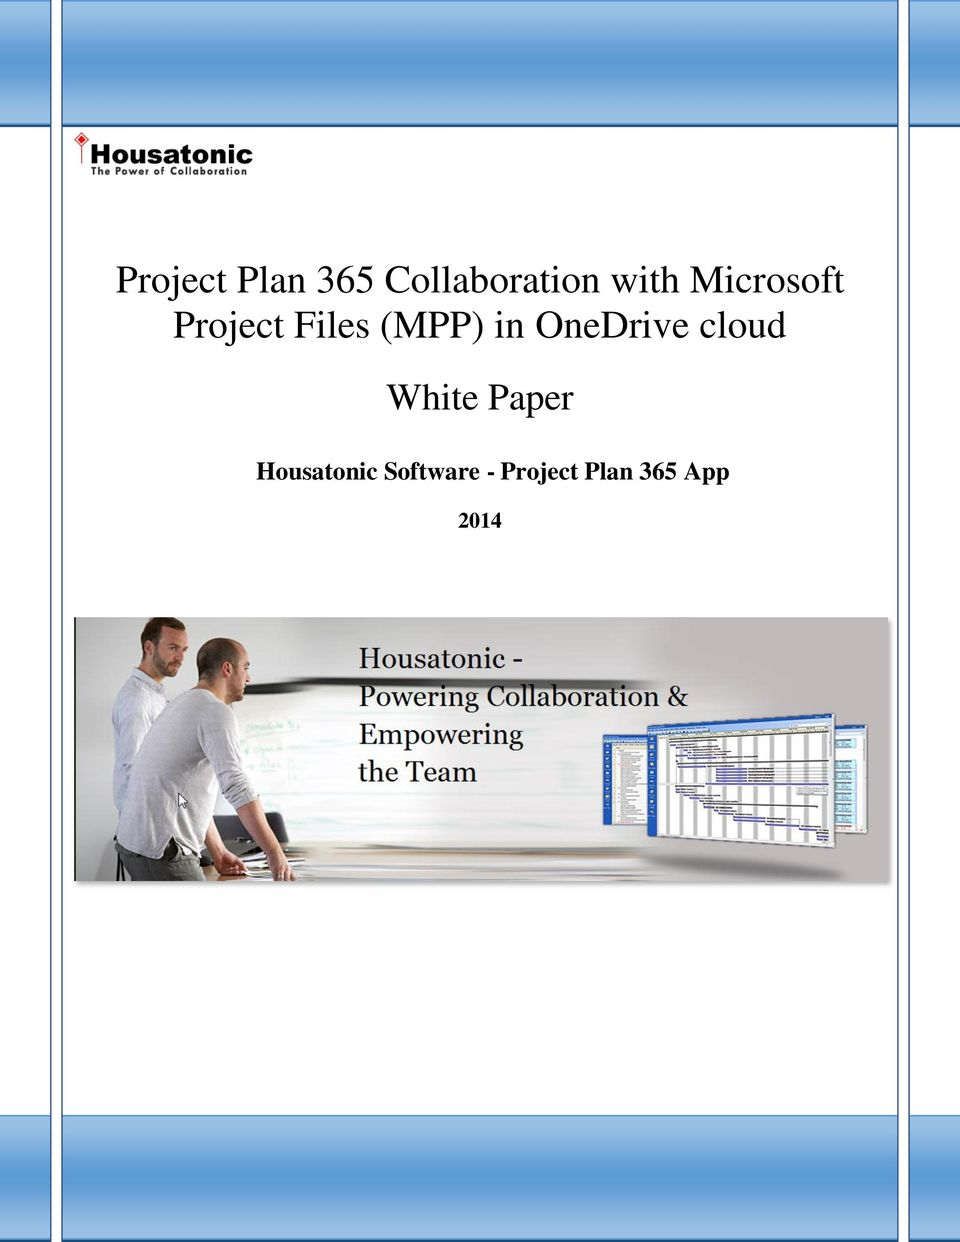 Project Plan 365 Collaboration with Microsoft Project Files